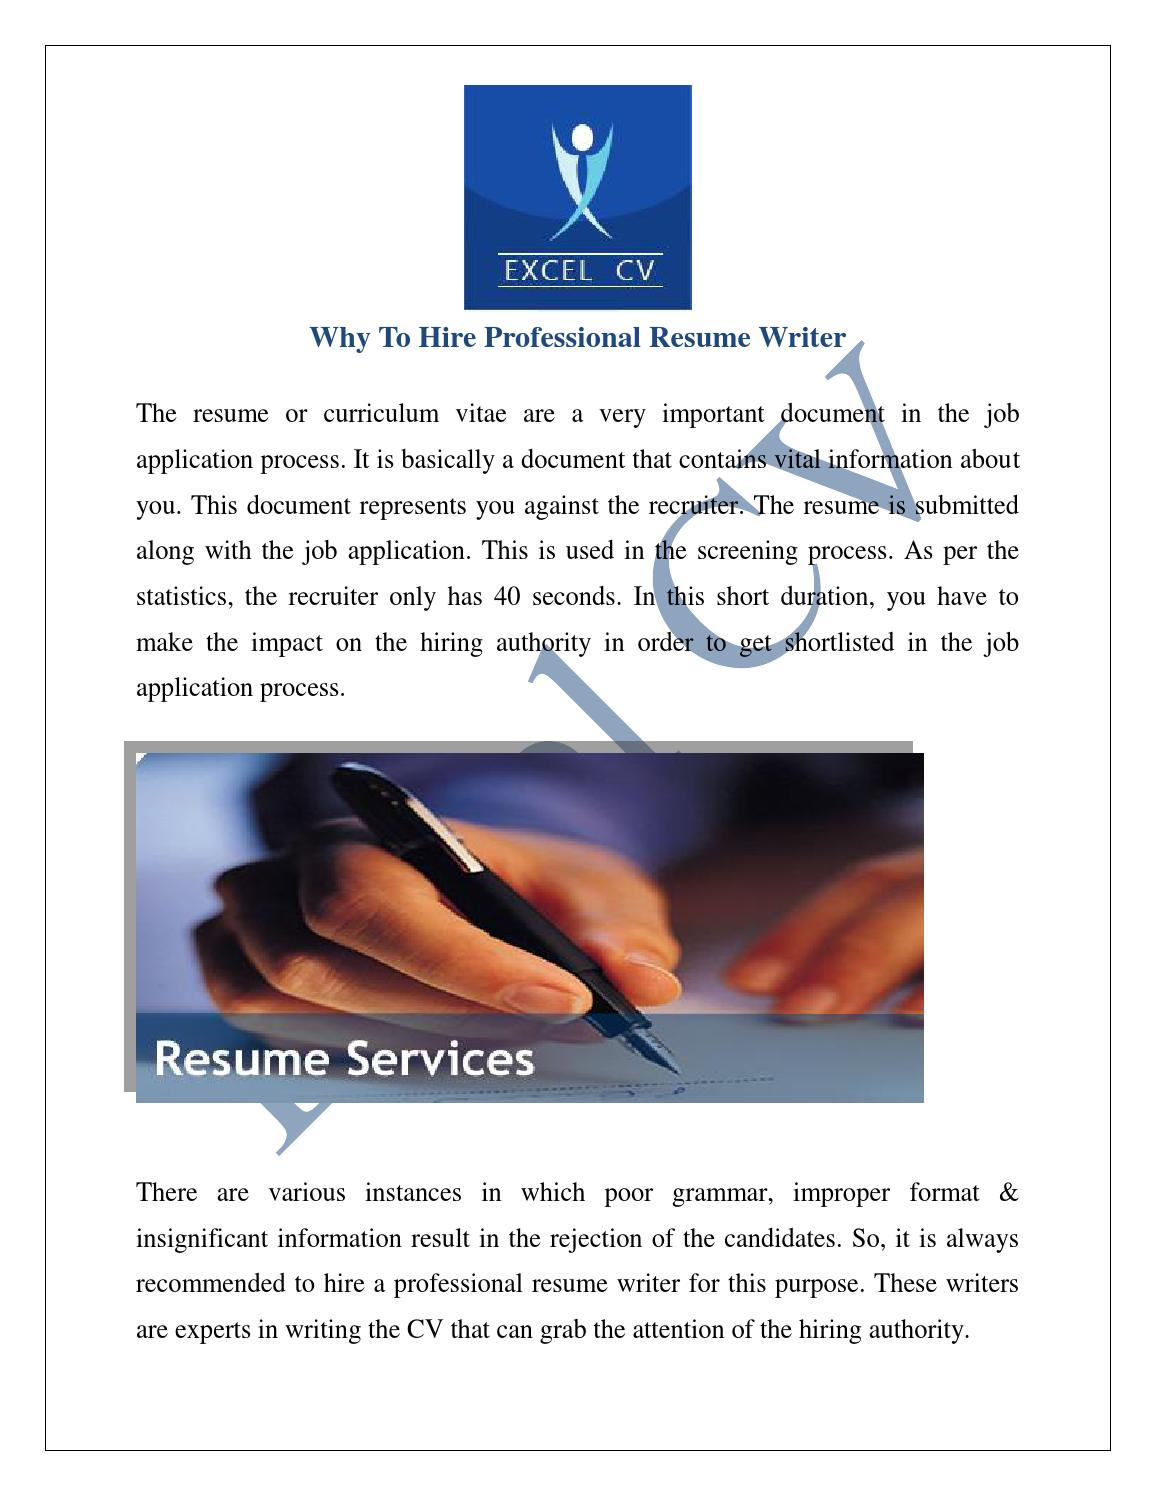 resume rewrite service This industry requires experience and strong social skills, so crafting a food service resume is not easy whether you are a chef, server, or host.